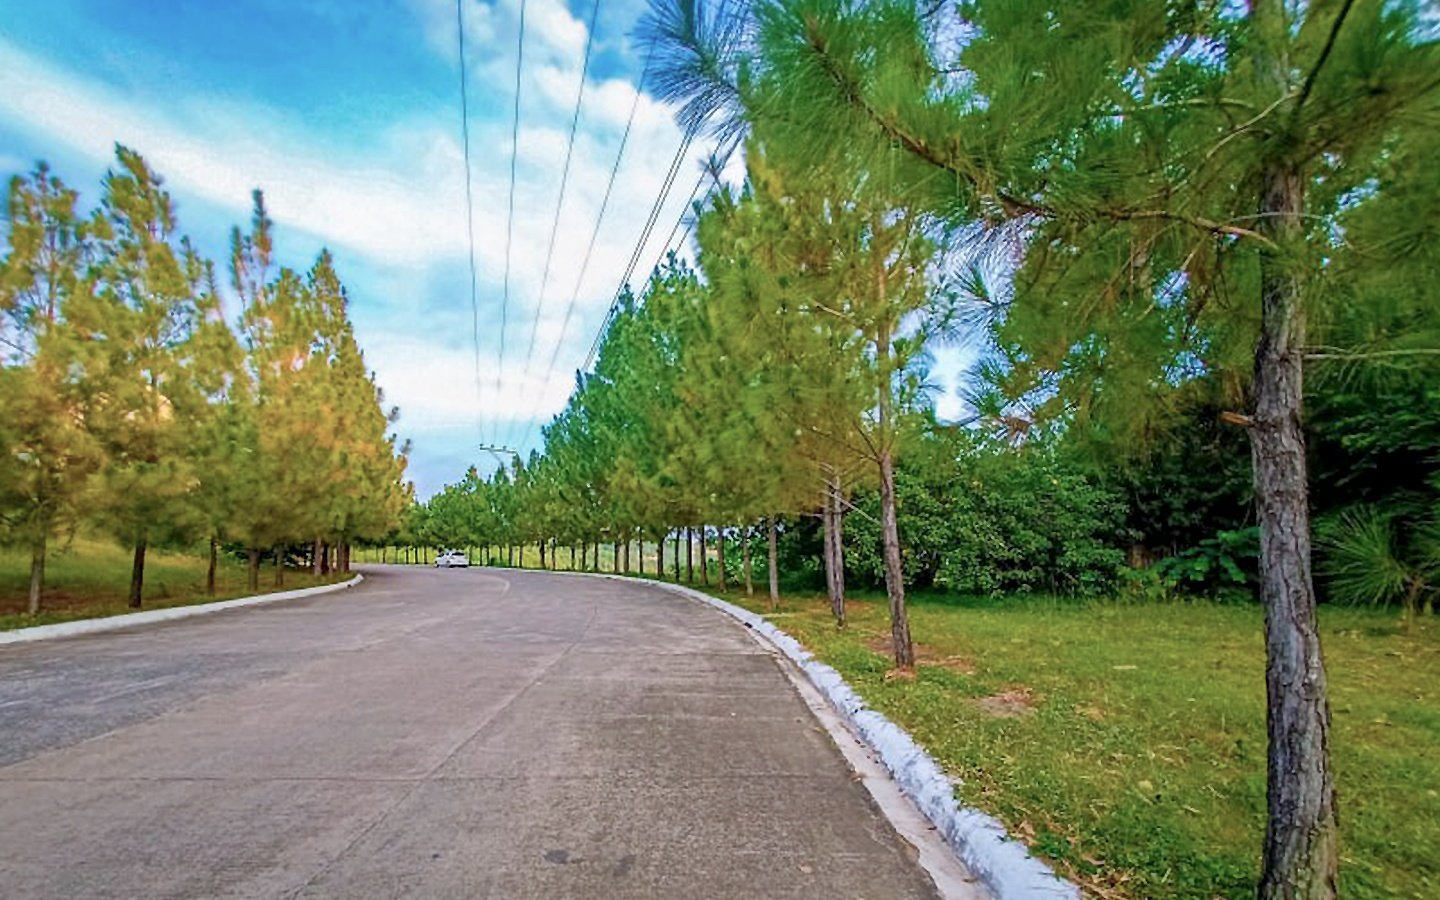 Camella Riverfront Green Avenue, a tree-lined roadway